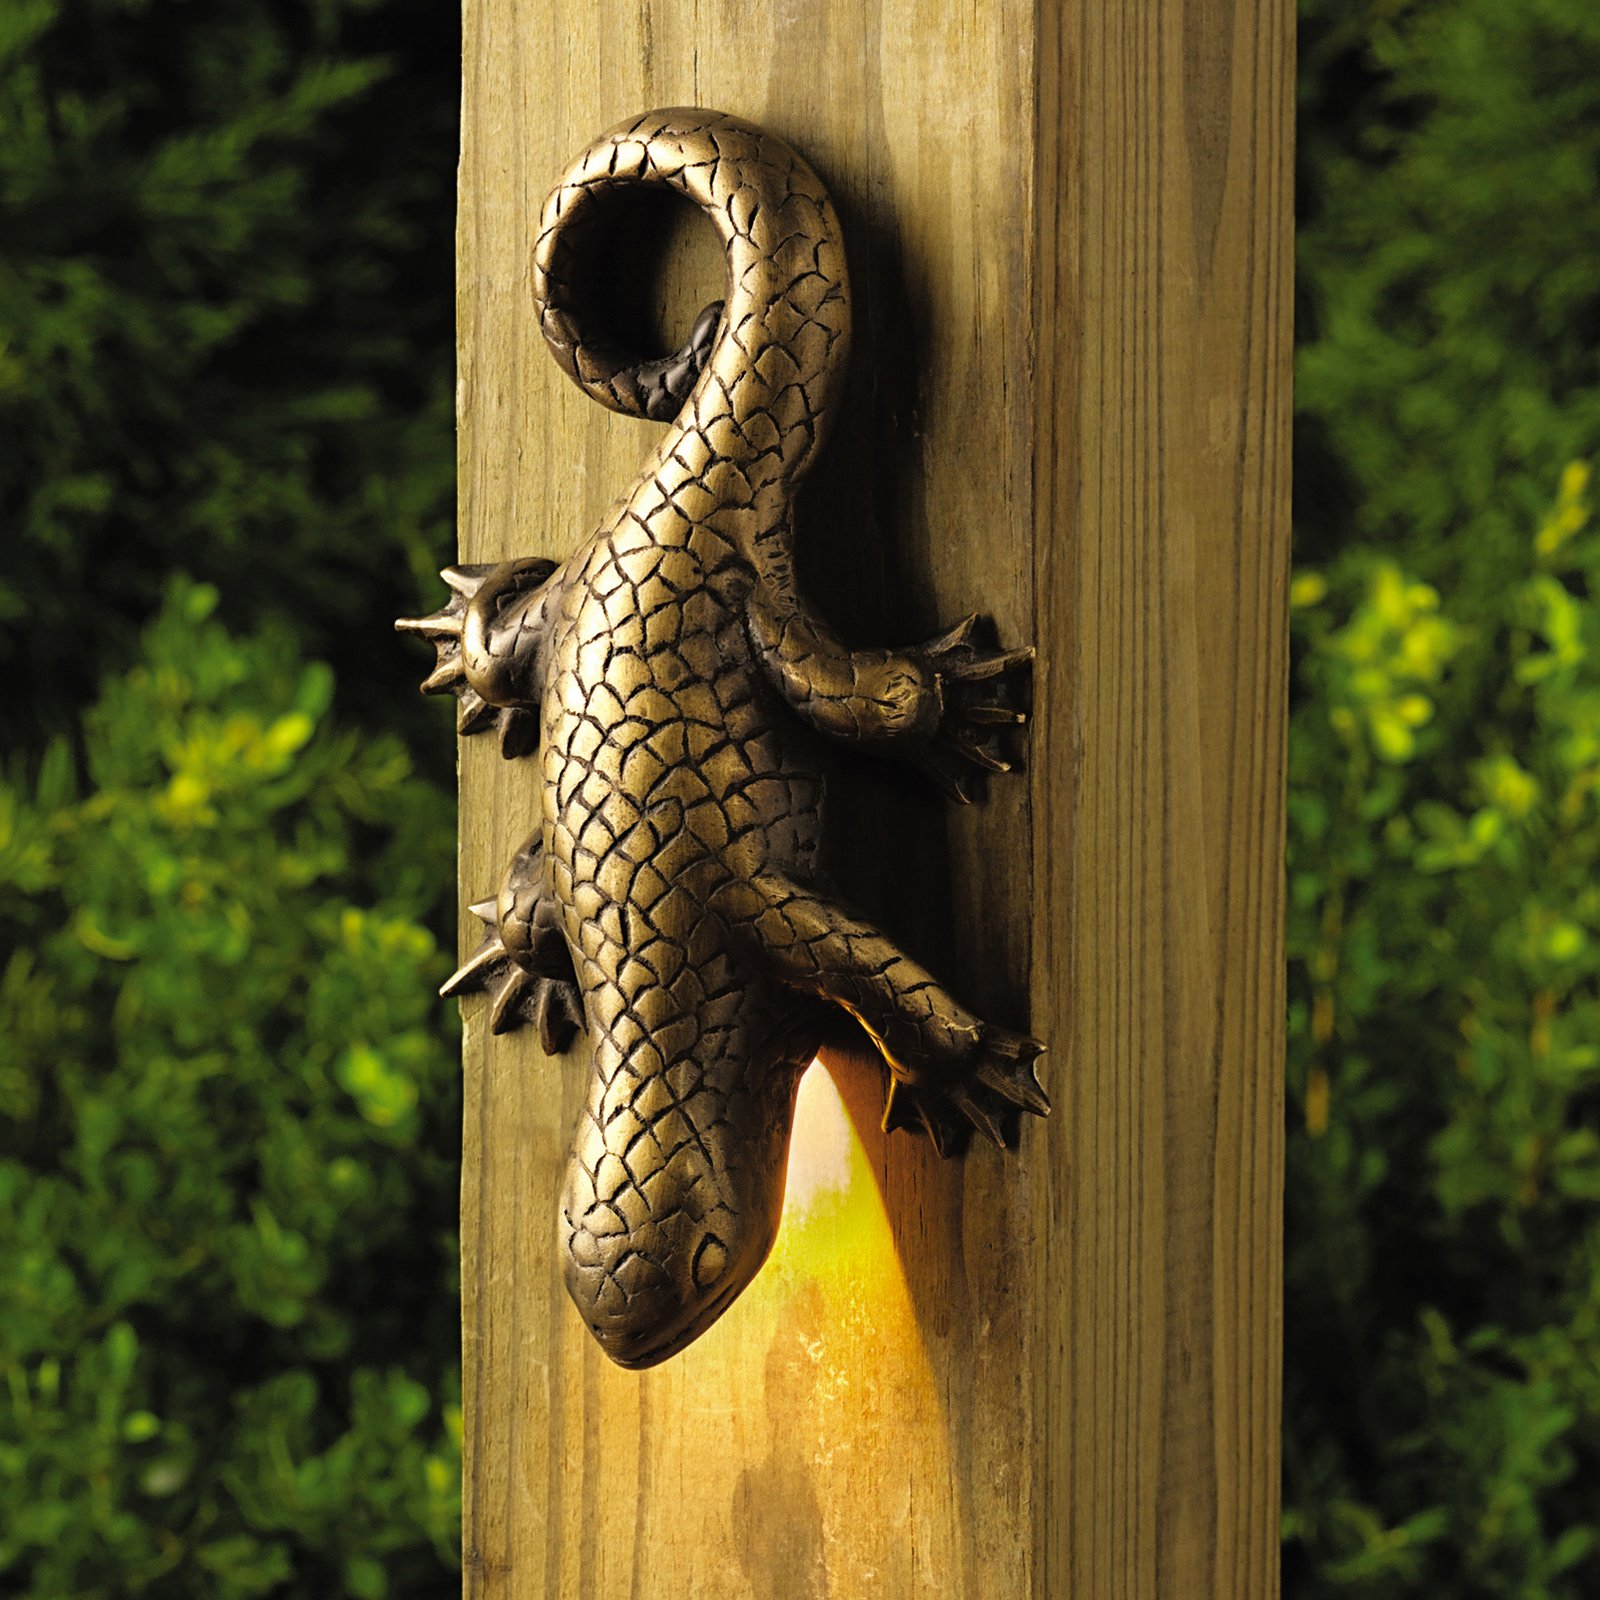 Kichler Lizard Deck Light